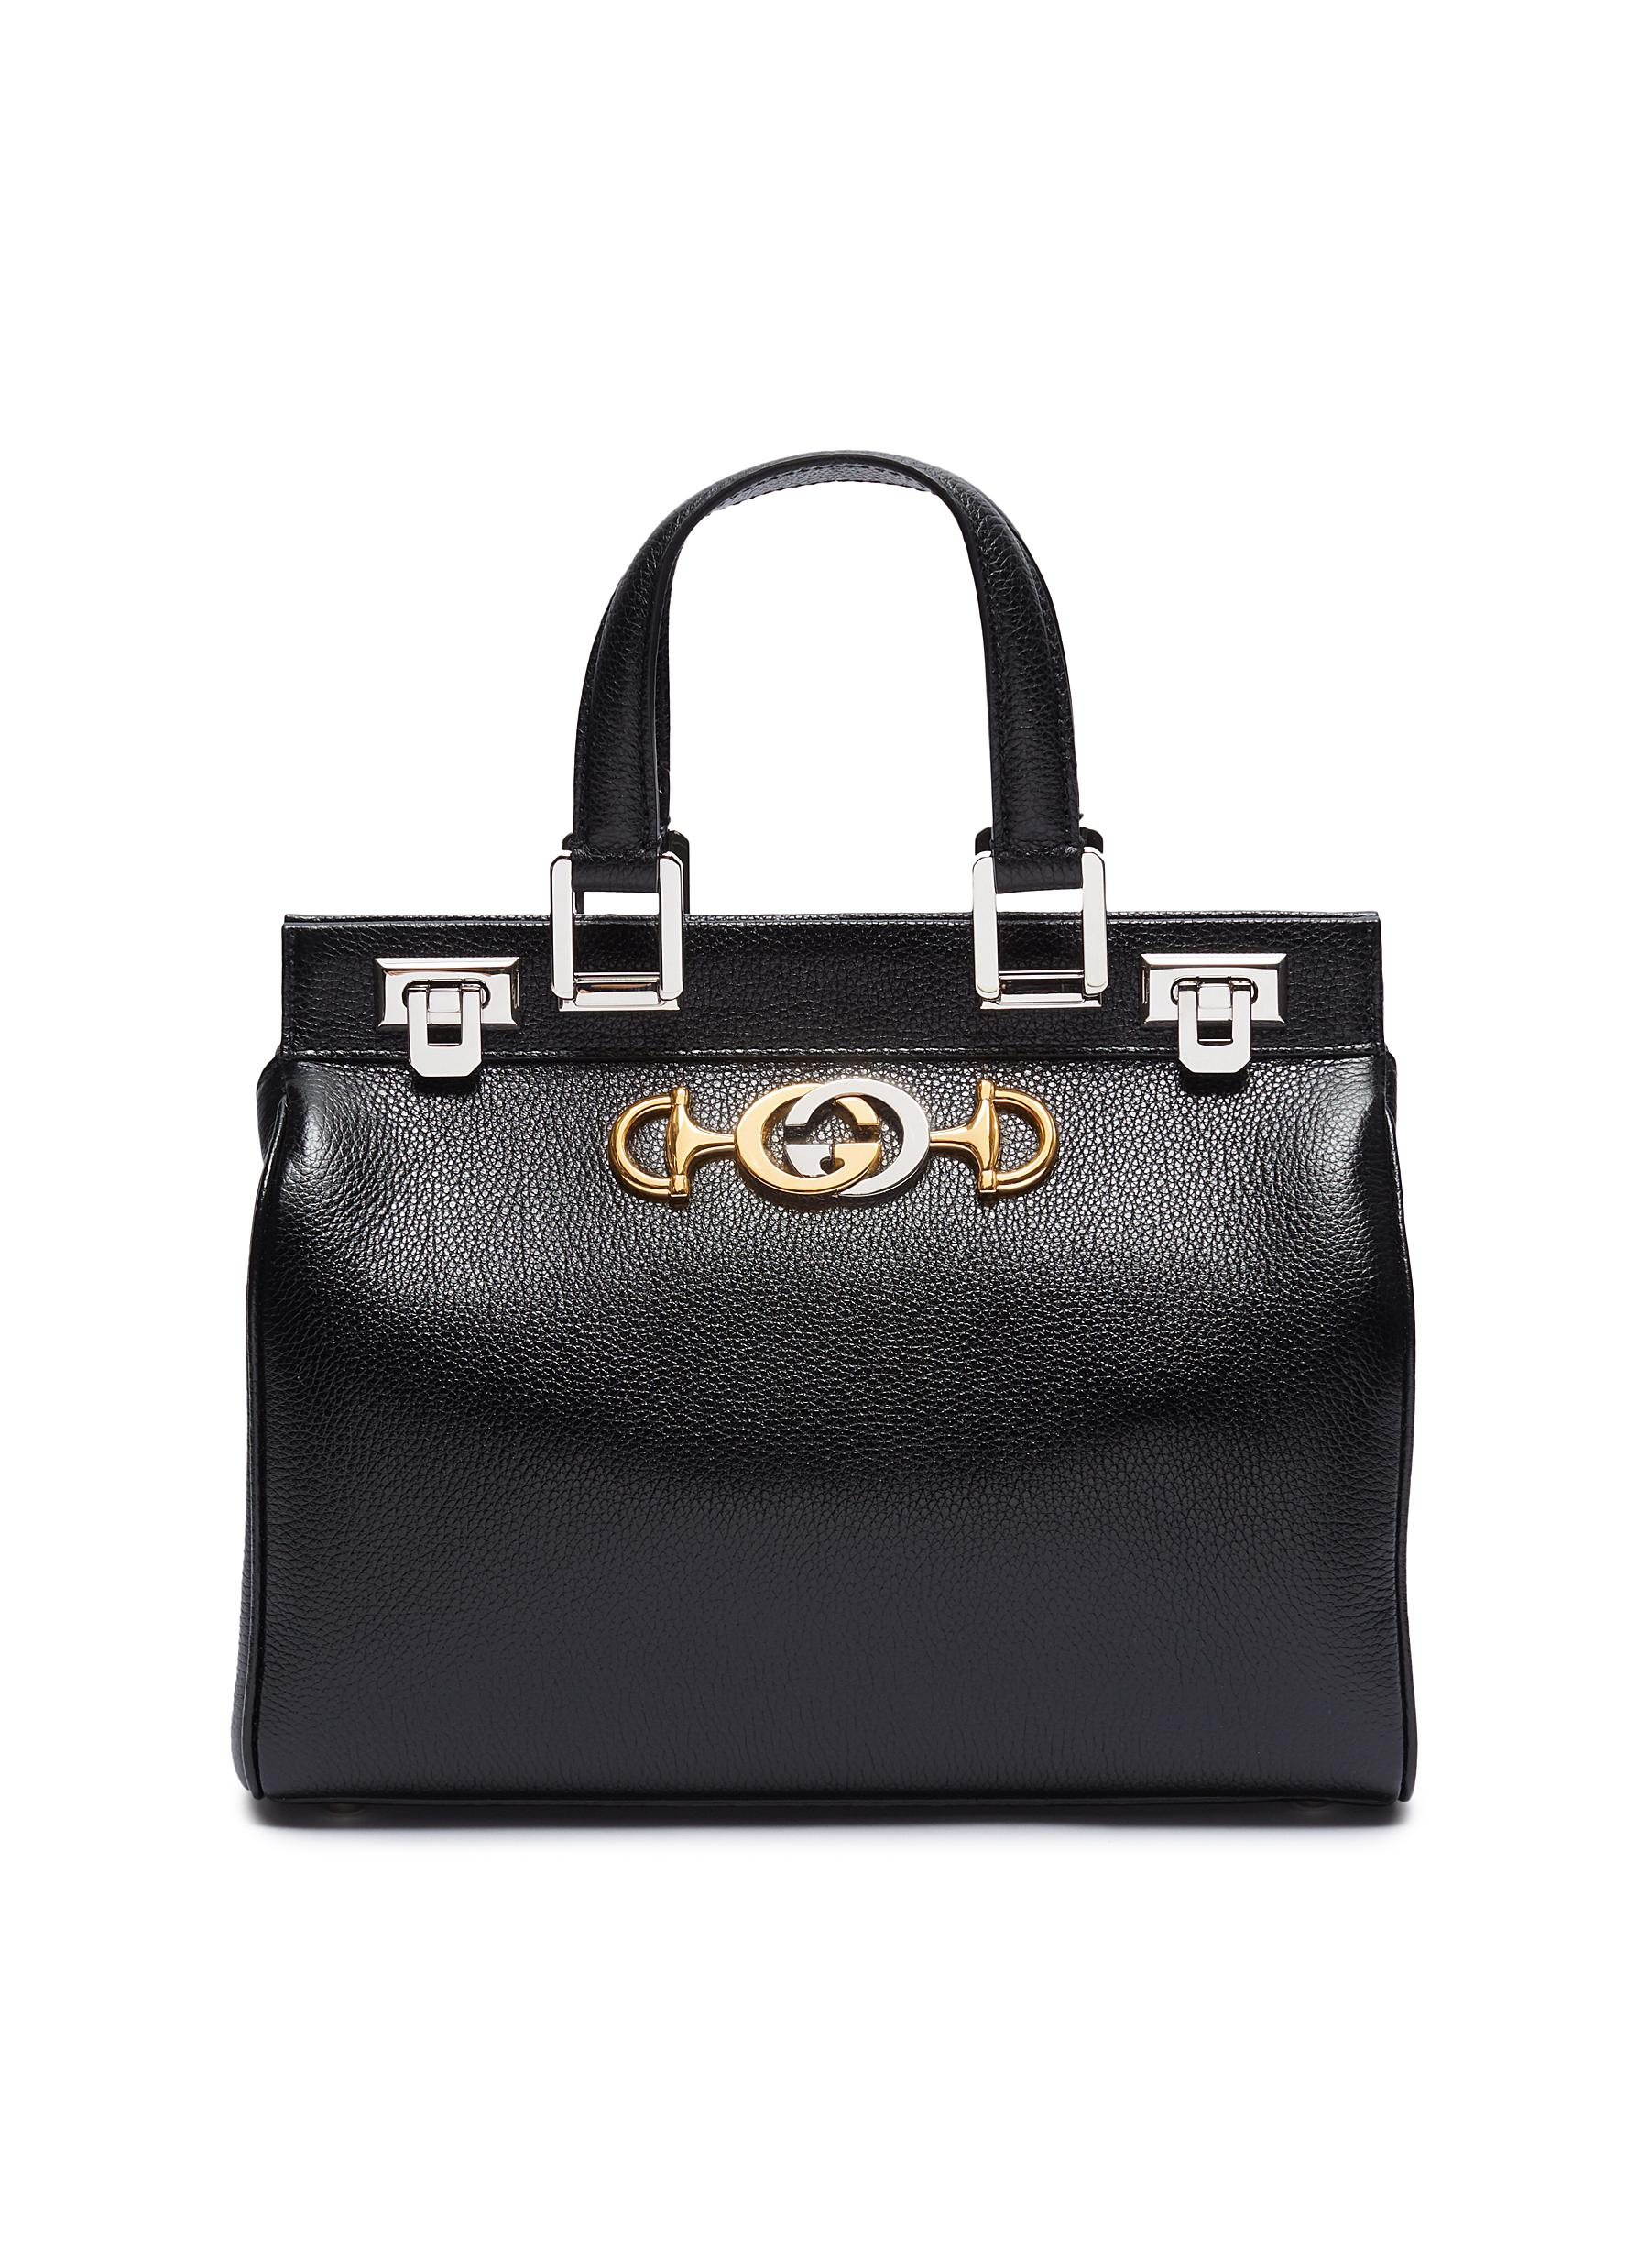 3b50596d3a3 Gucci.  Zumi  small leather top handle bag